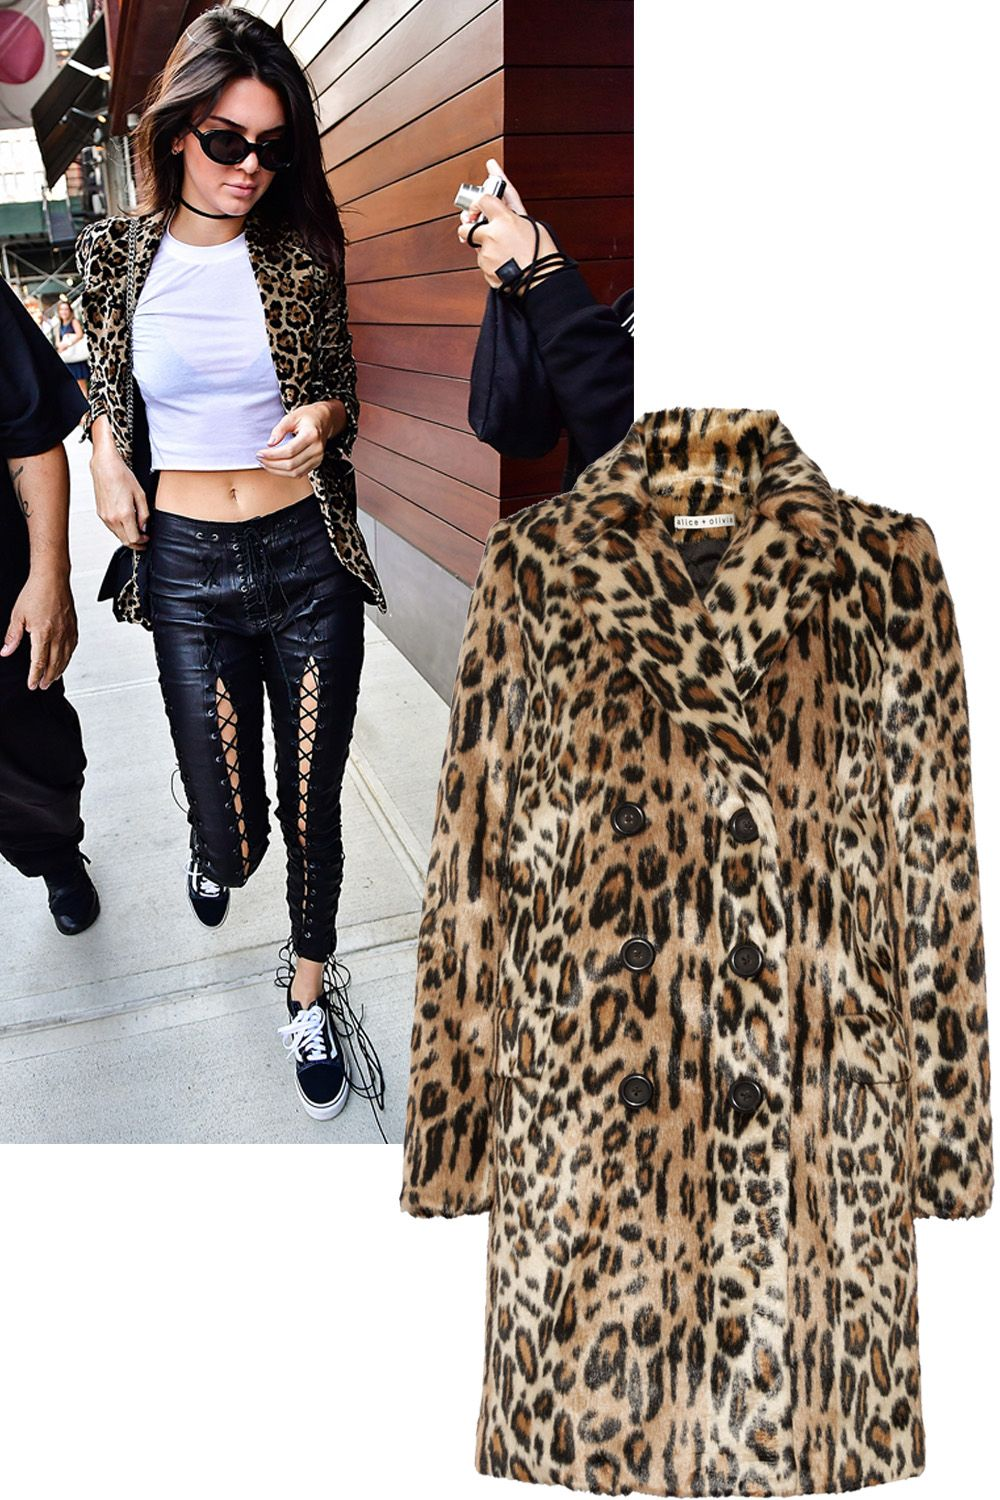 "<p>Who: Kendall Jenner</p><p>What: Leather pants, trainers and a little leopard lend you and your aura a little edge.</p><p><em data-redactor-tag=""em"" data-verified=""redactor"">Alice + Olivia jacket, $595, <a href=""https://www.aliceandolivia.com/montana-doublebreasted-peacoat.html"" target=""_blank"">aliceandolivia.com</a><span class=""redactor-invisible-space"" data-verified=""redactor"" data-redactor-tag=""span"" data-redactor-class=""redactor-invisible-space""><a href=""https://www.aliceandolivia.com/montana-doublebreasted-peacoat.html""></a></span>. </em></p>"